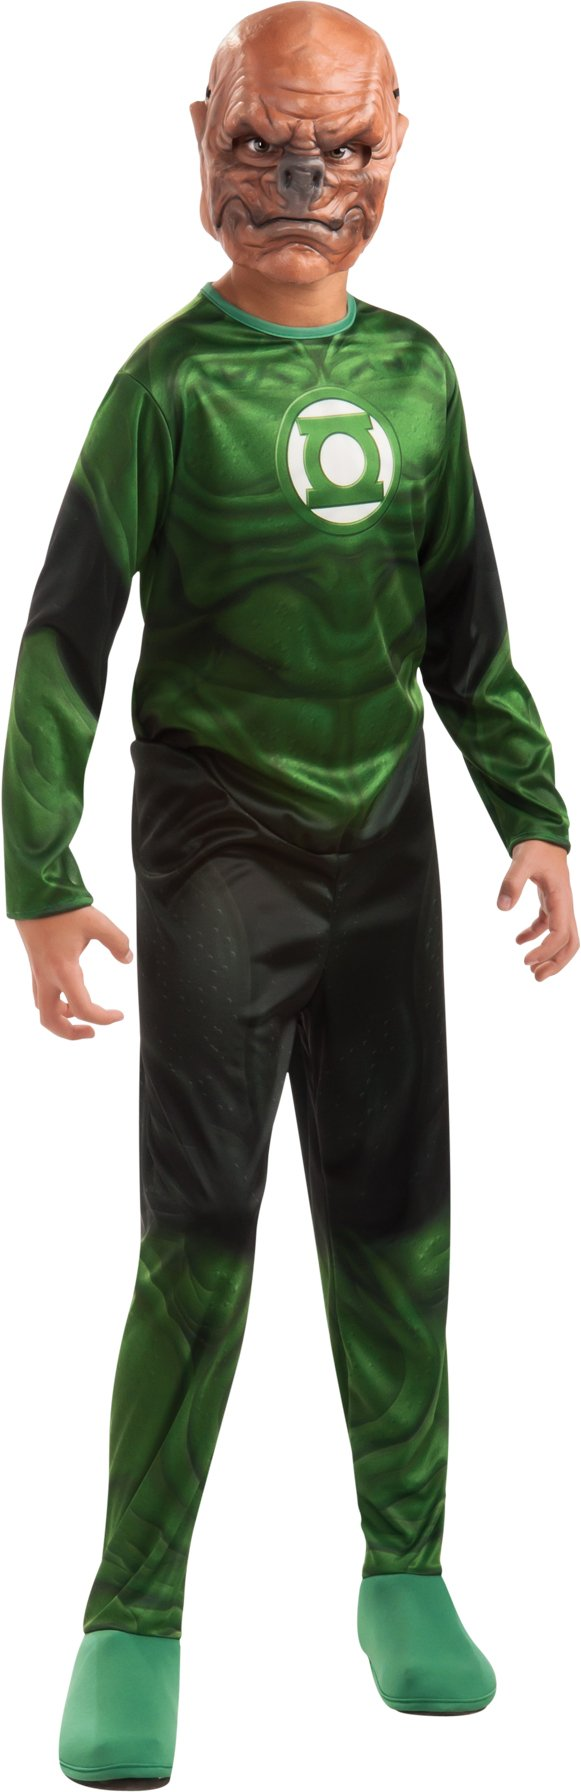 Green Lantern - Kilowog Child Costume